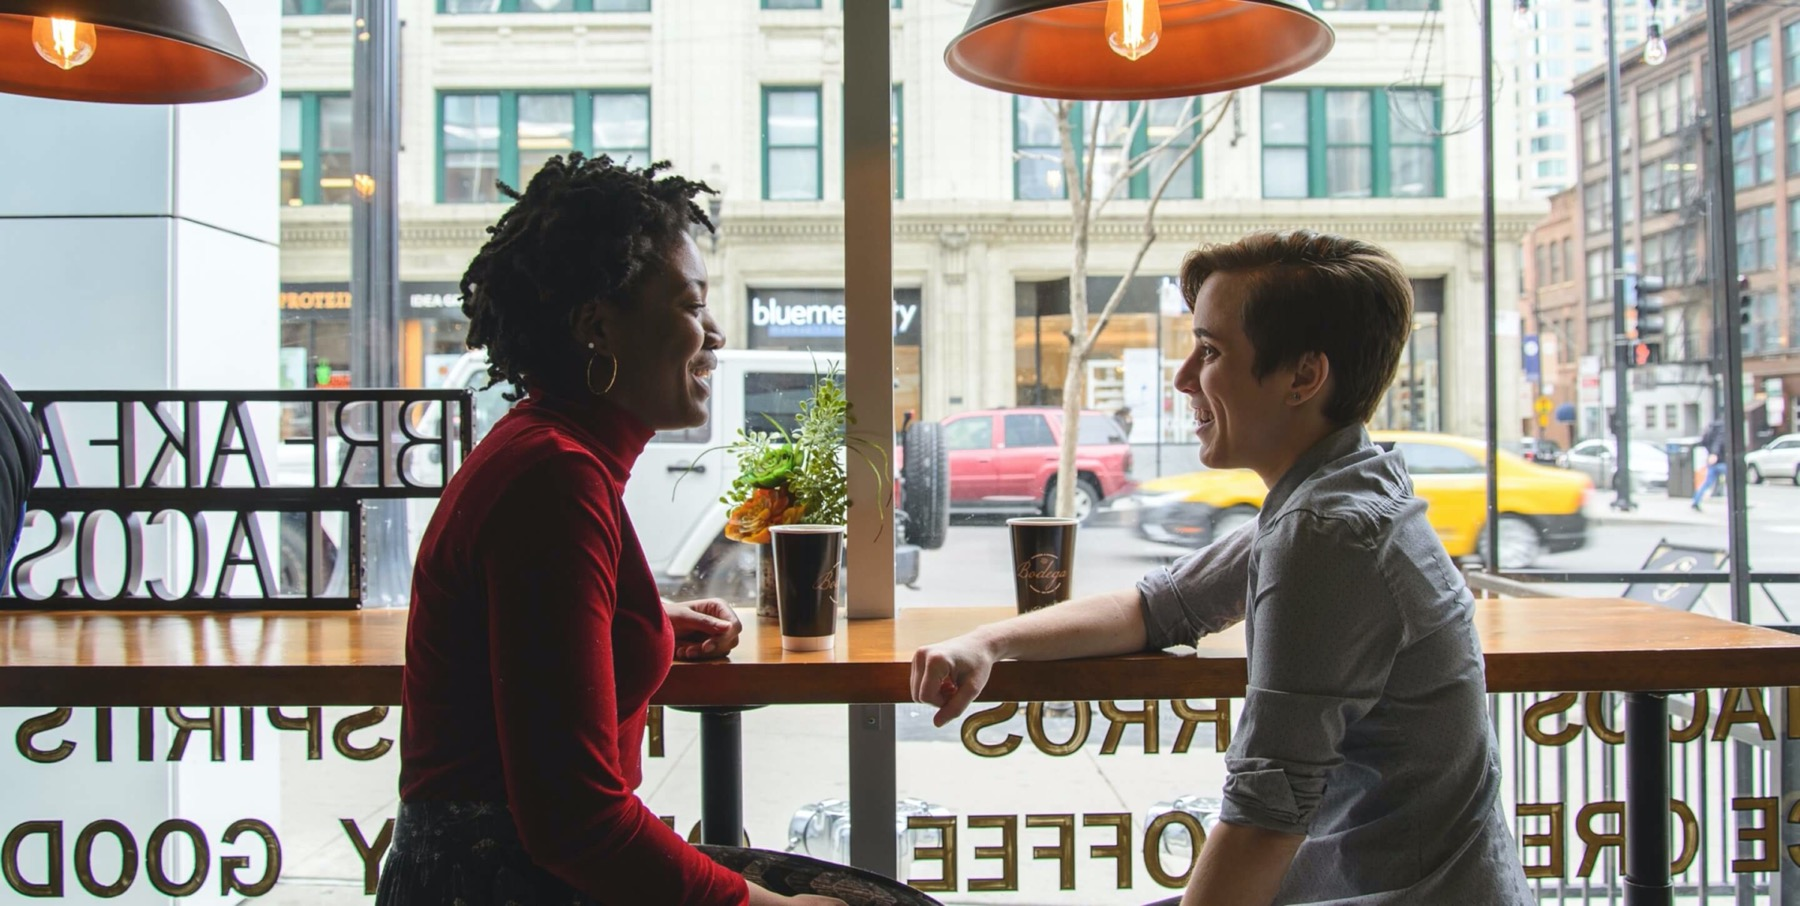 Two people talking in a coffee shop in Chicago